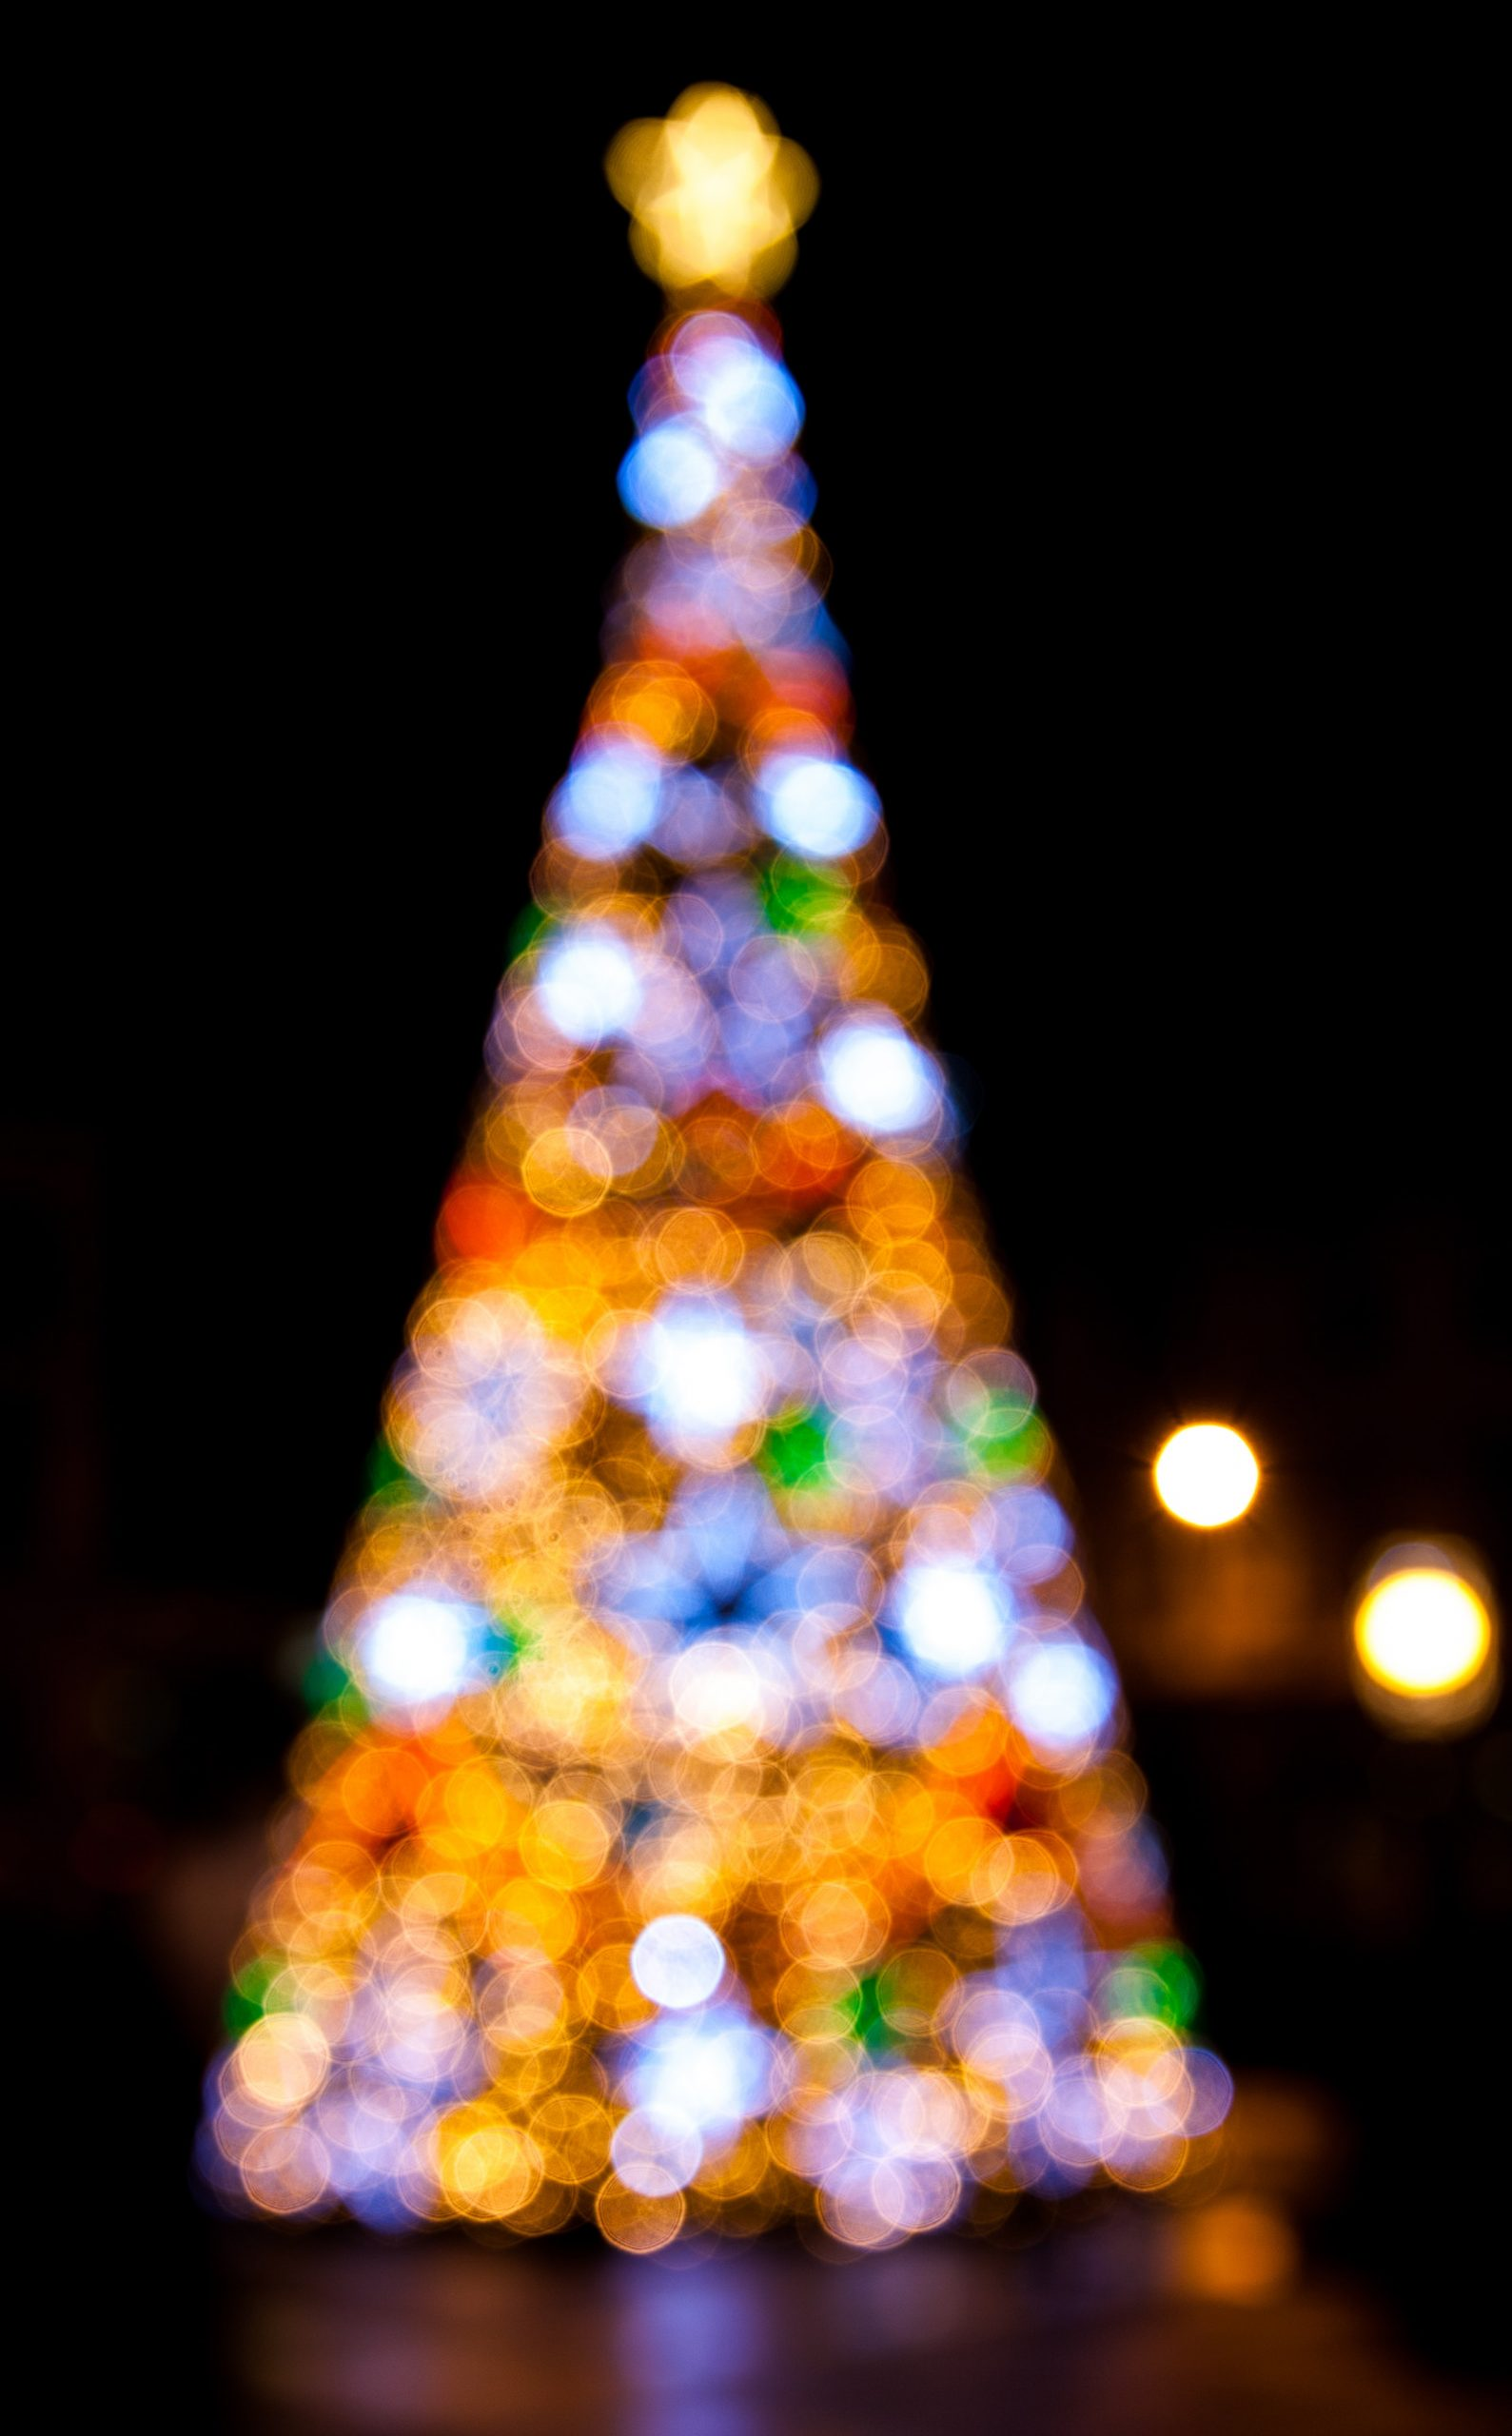 A Christmas iPhone wallpaper of a lit up Christmas tree